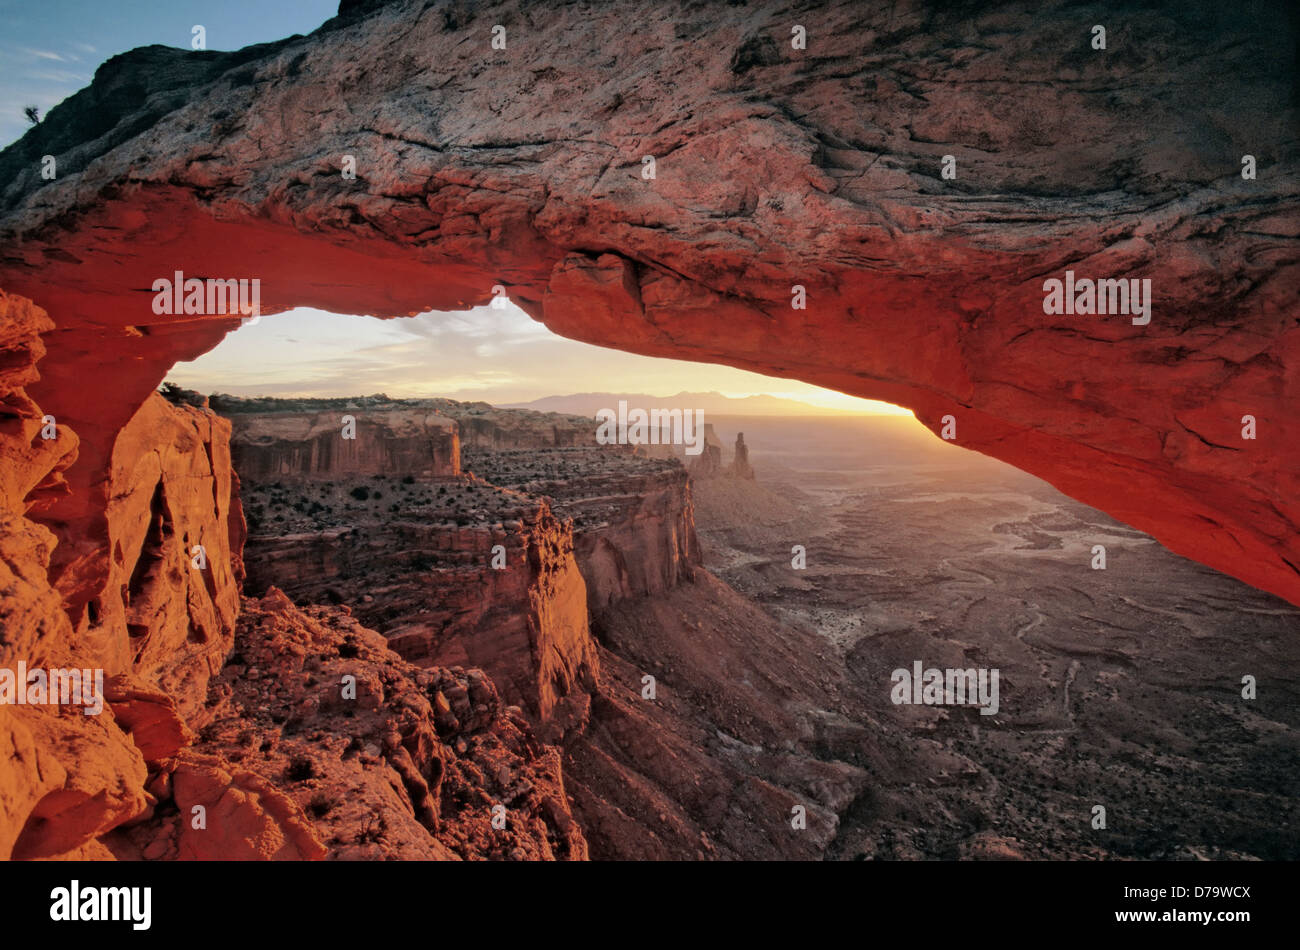 The red glow of Mesa Arch in early sunrise - Stock Image